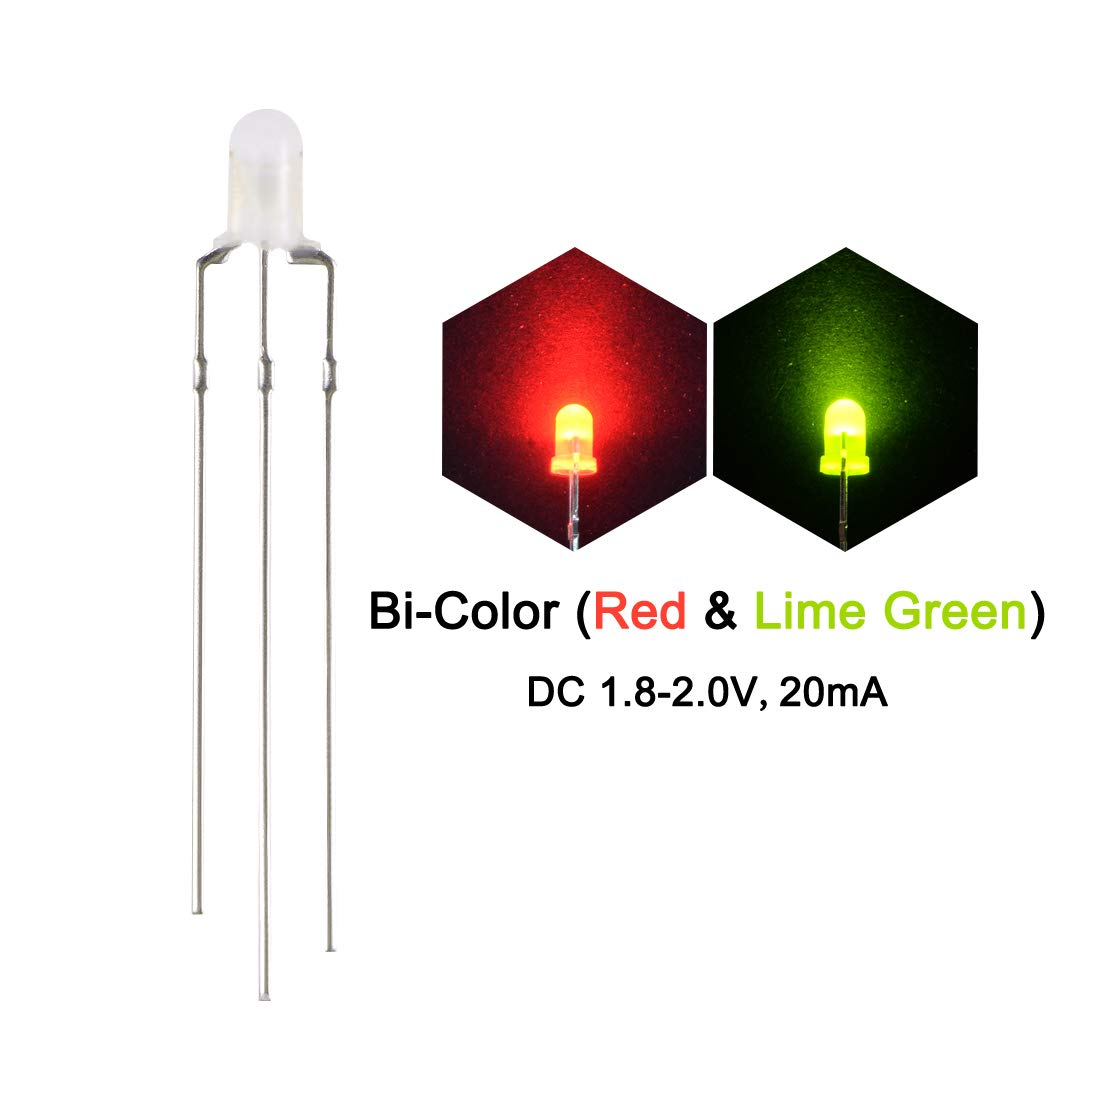 sourcing map 3mm LED Diodes and Resistors Kit Red /& Lime Green Common Cathode 430 Ohm Resistors Round Top Frosted Lens No Edge for DC 6-12V 25 Sets Diffused Bi-Color for DIY Project